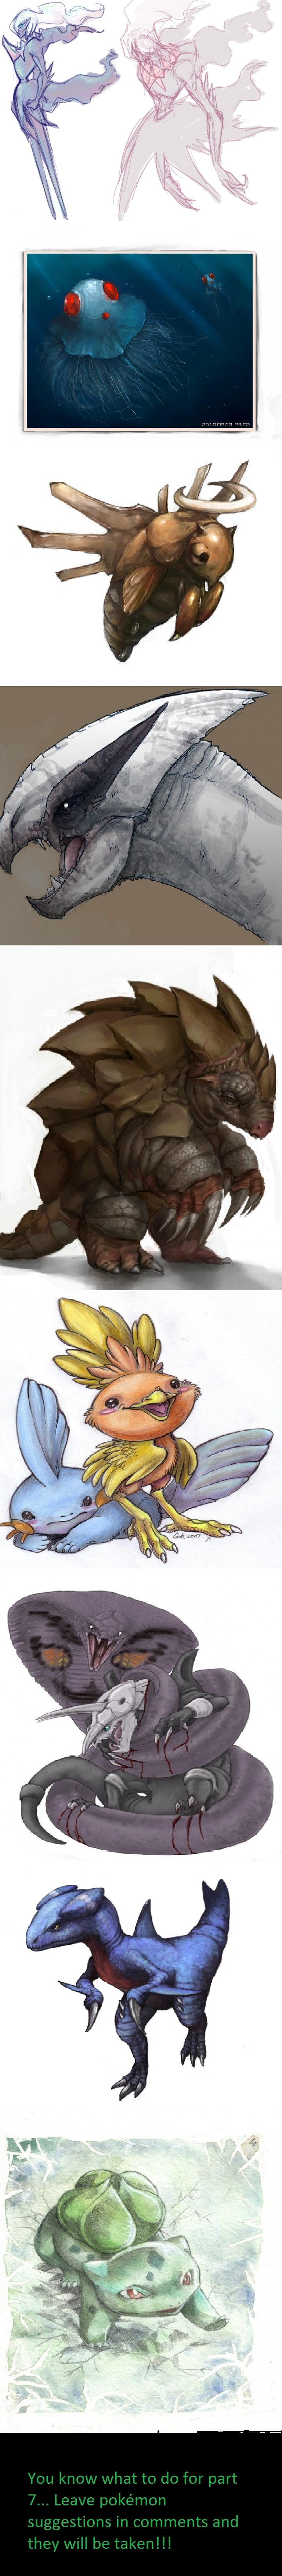 "Realistic pokemon drawings part 6. Part 5 is here and links to 4-3-2-1 on same page! <a href=""pictures/1523474/Realistic+pokemon+5/"" target=blank&g"